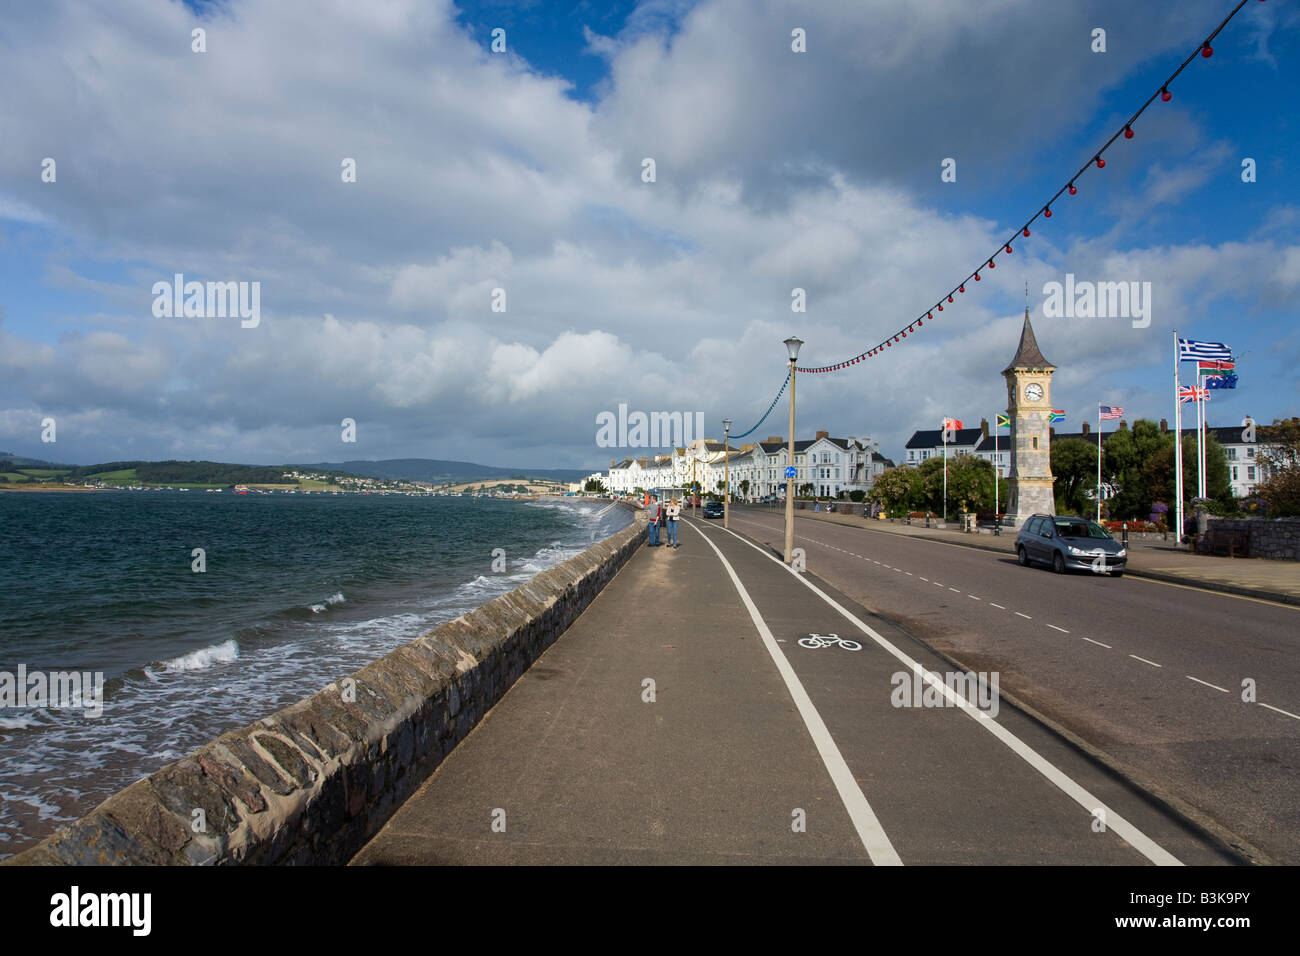 Exmouth seafront and promenade on a sunny summers day Devon England United Kingdom GB Great Britain British Isles - Stock Image